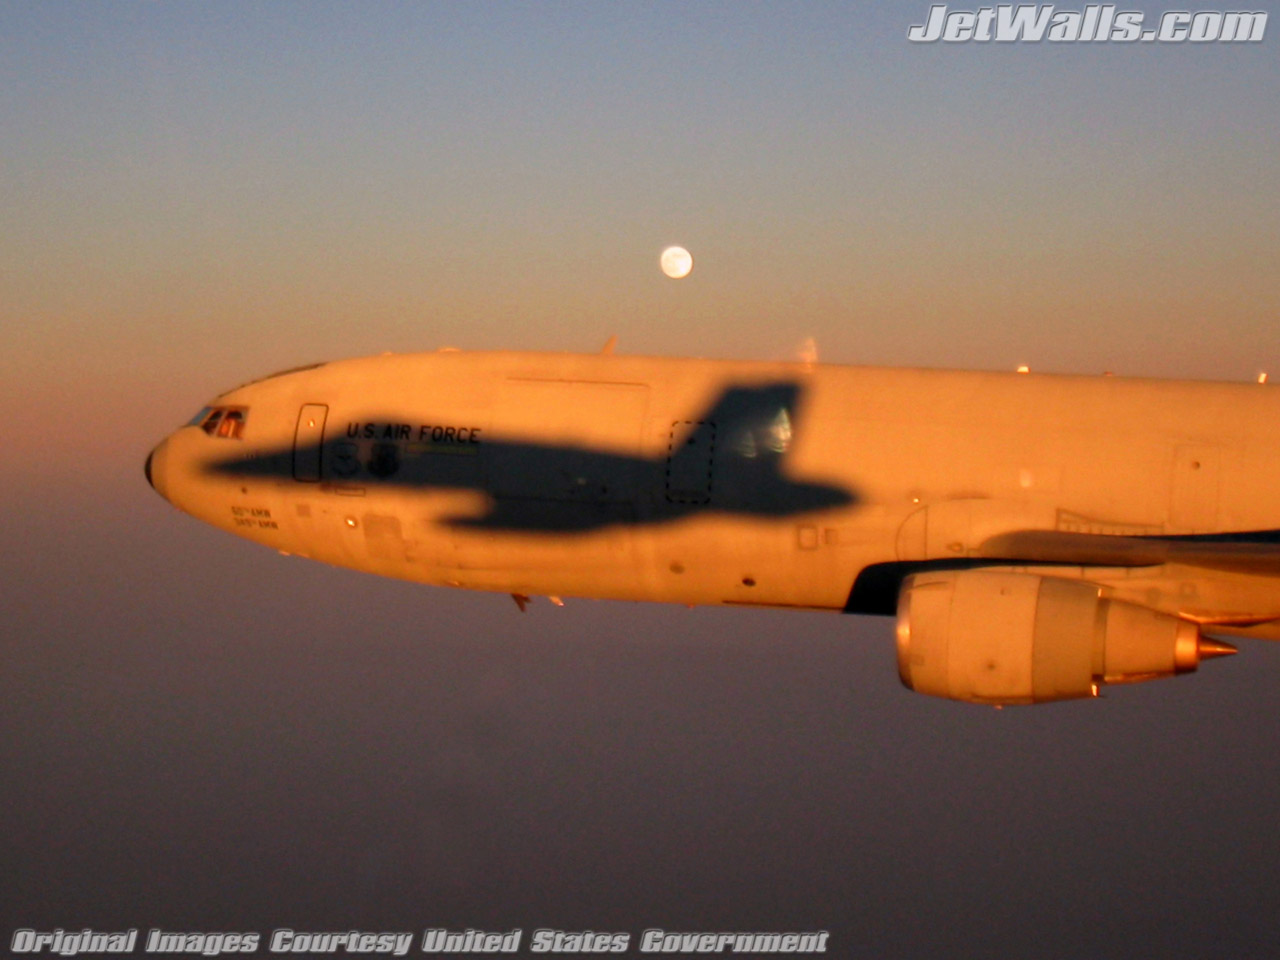 """F/A-18C Hornet Shadow on KC-10A Extender"" - Wallpaper No. 17 of 101. Right click for saving options."